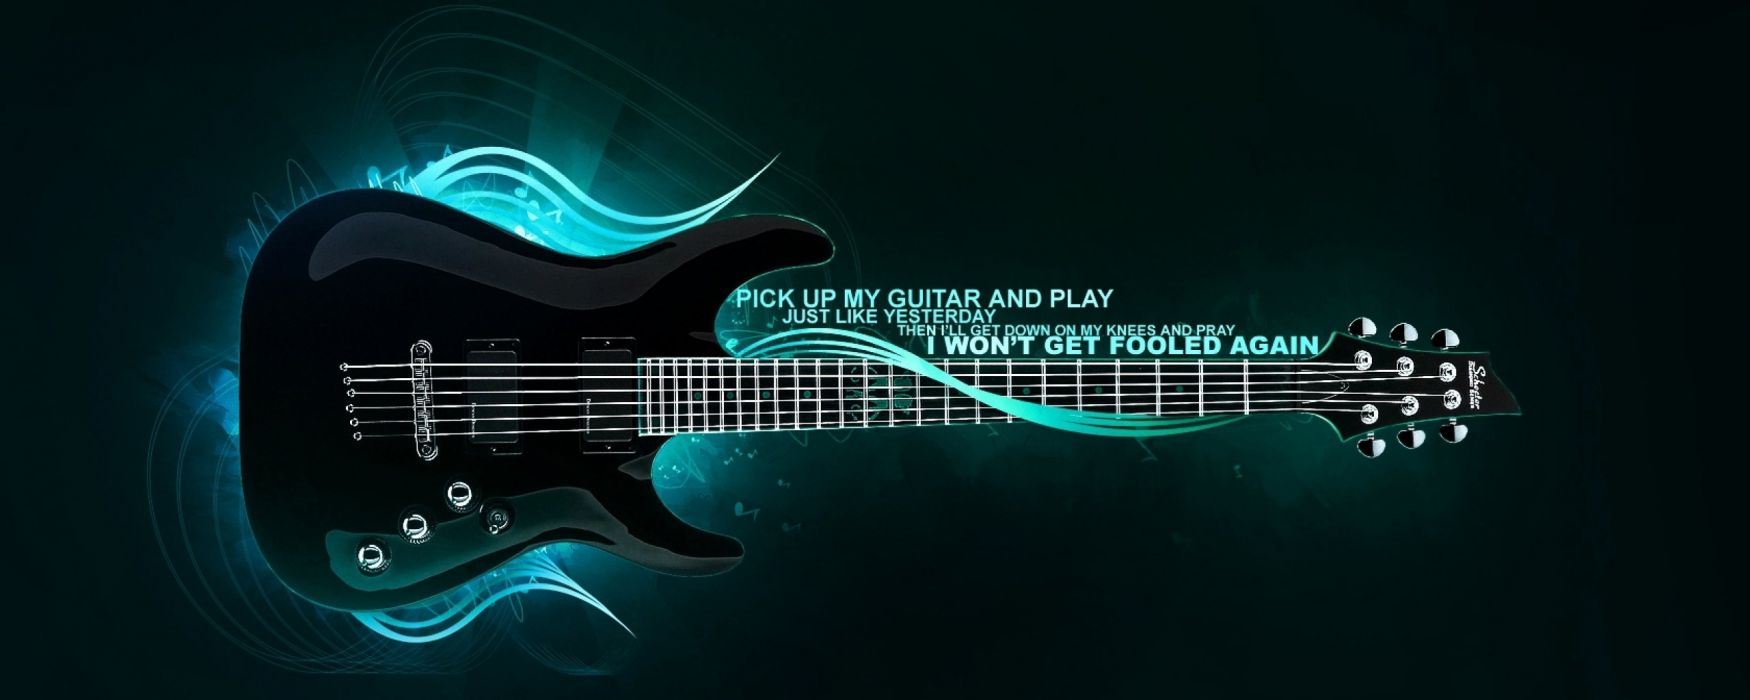 Download Wallpaper Music Dual Monitor - 0be20788f0d7d8780d4e45a3ca7f7515-700  Graphic_204835.jpg